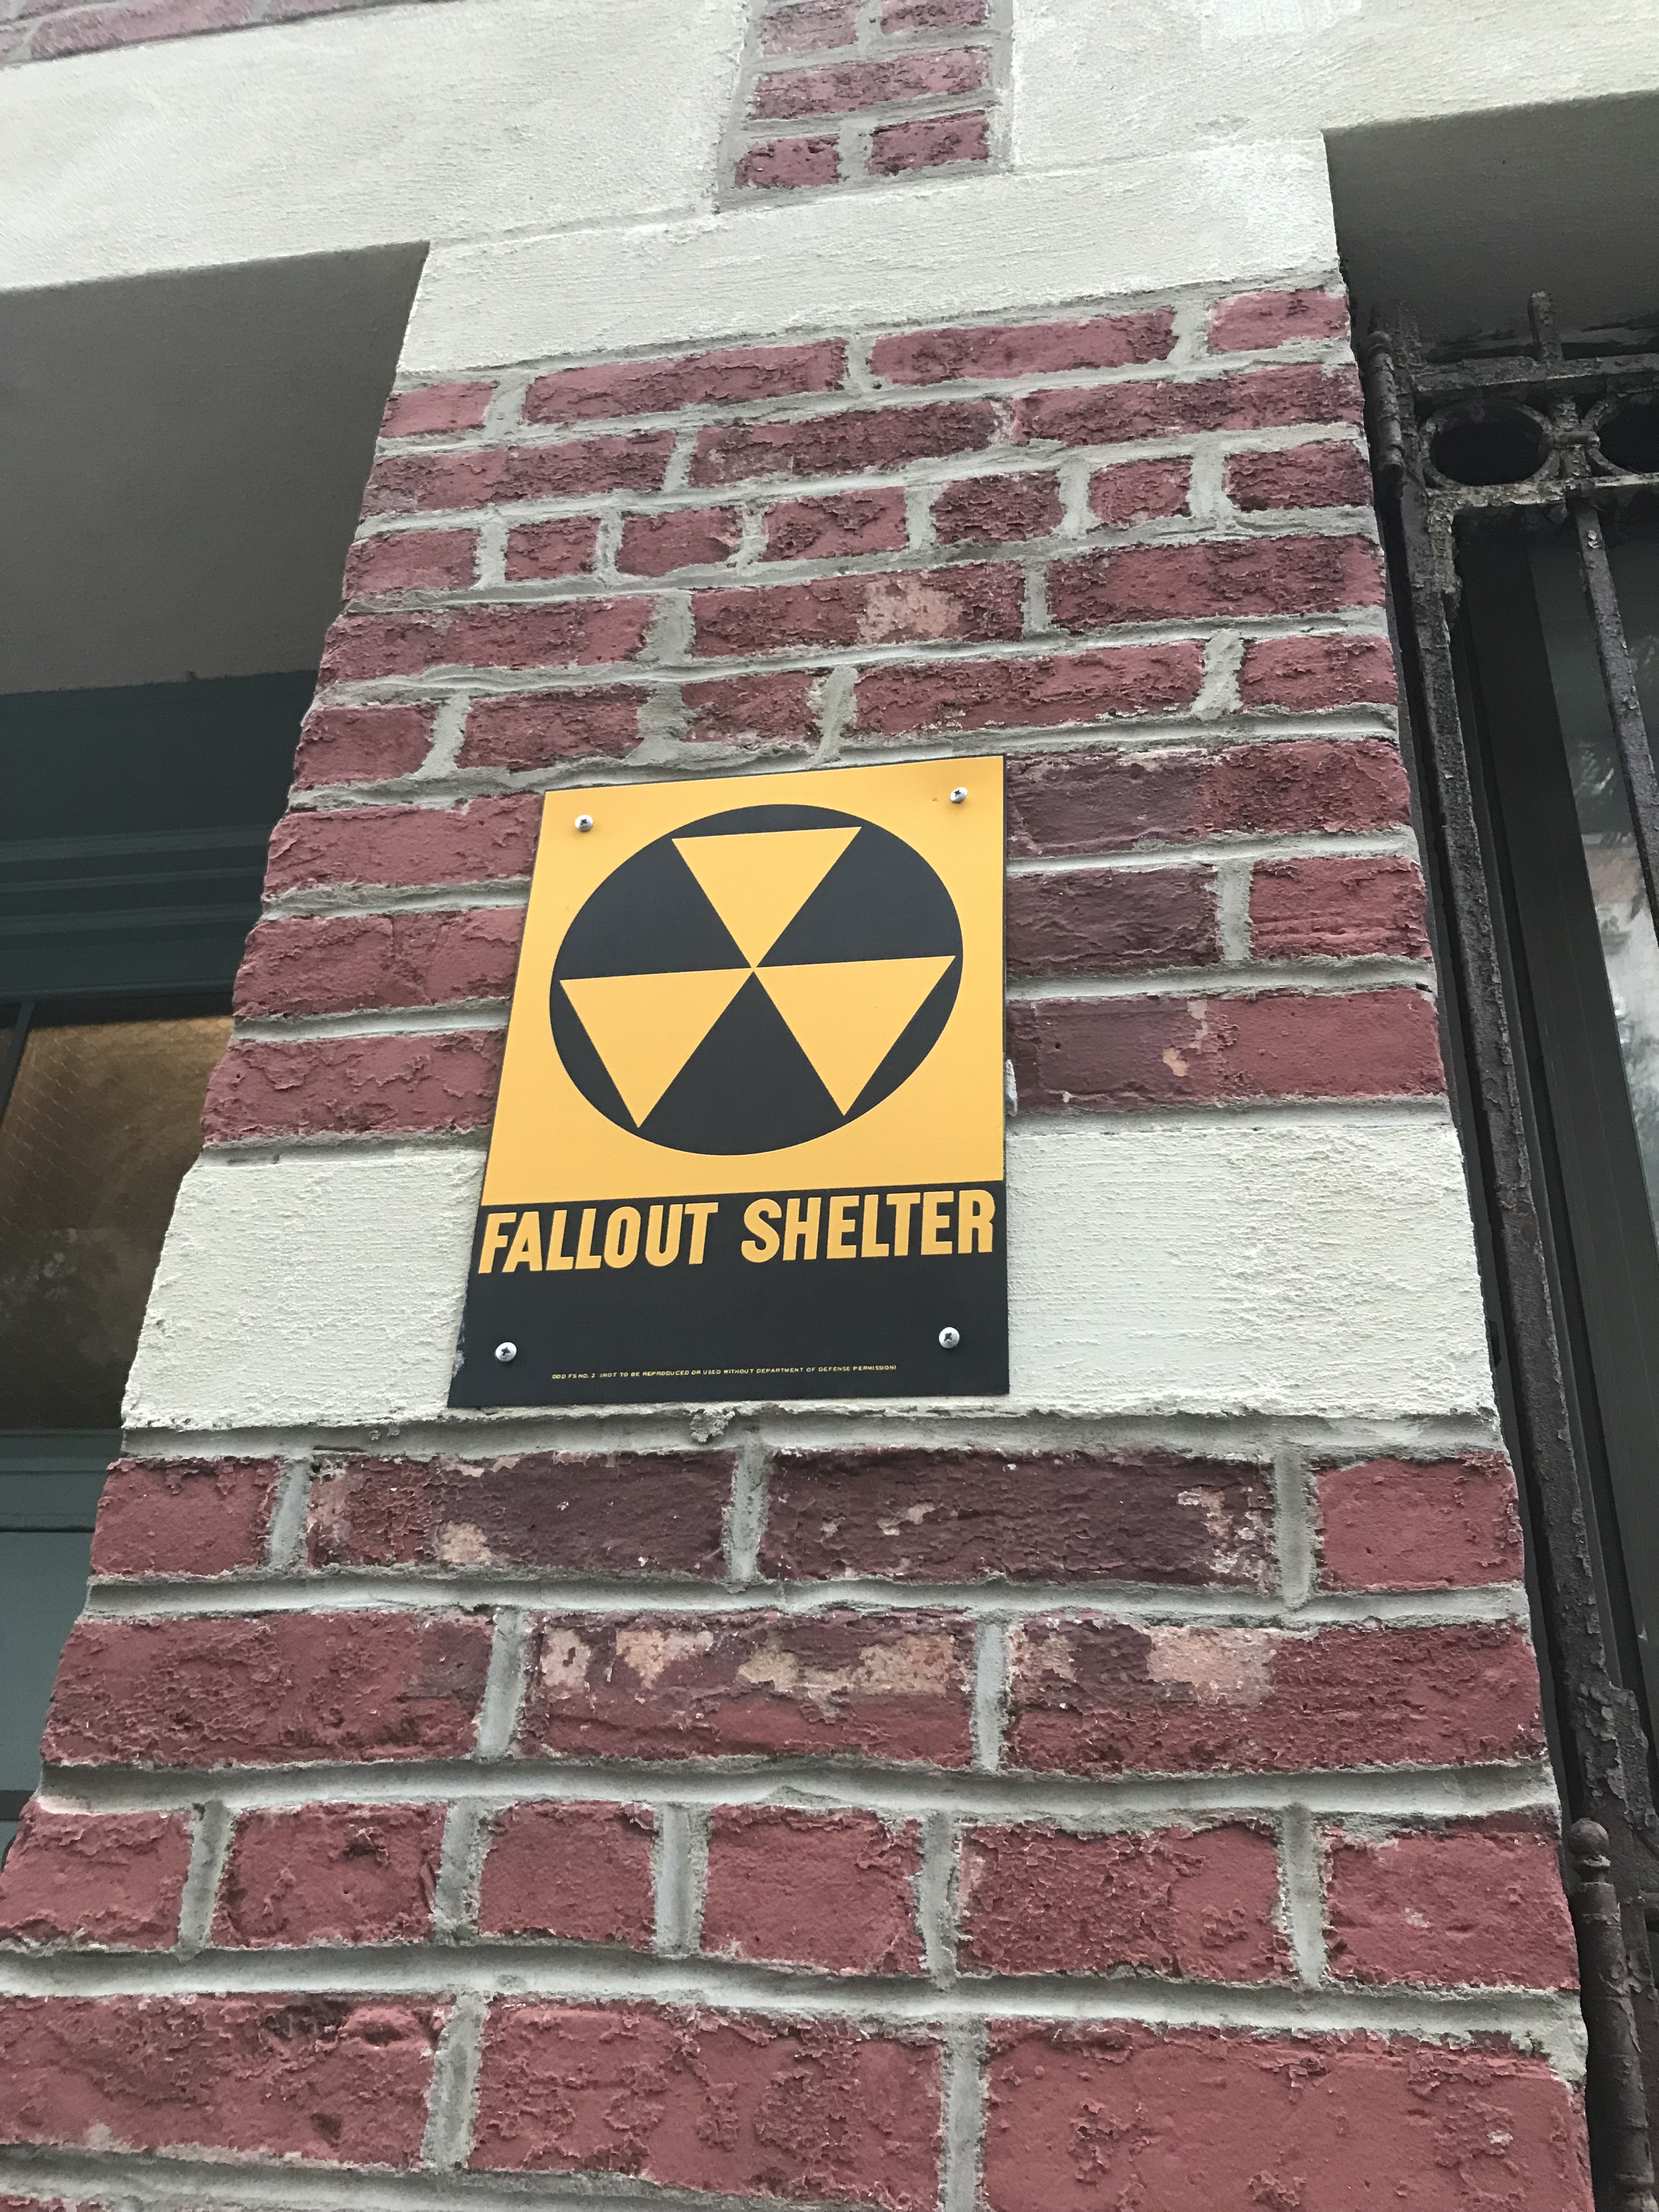 New Fallout Shelter sign put up on Manhattan apartment building